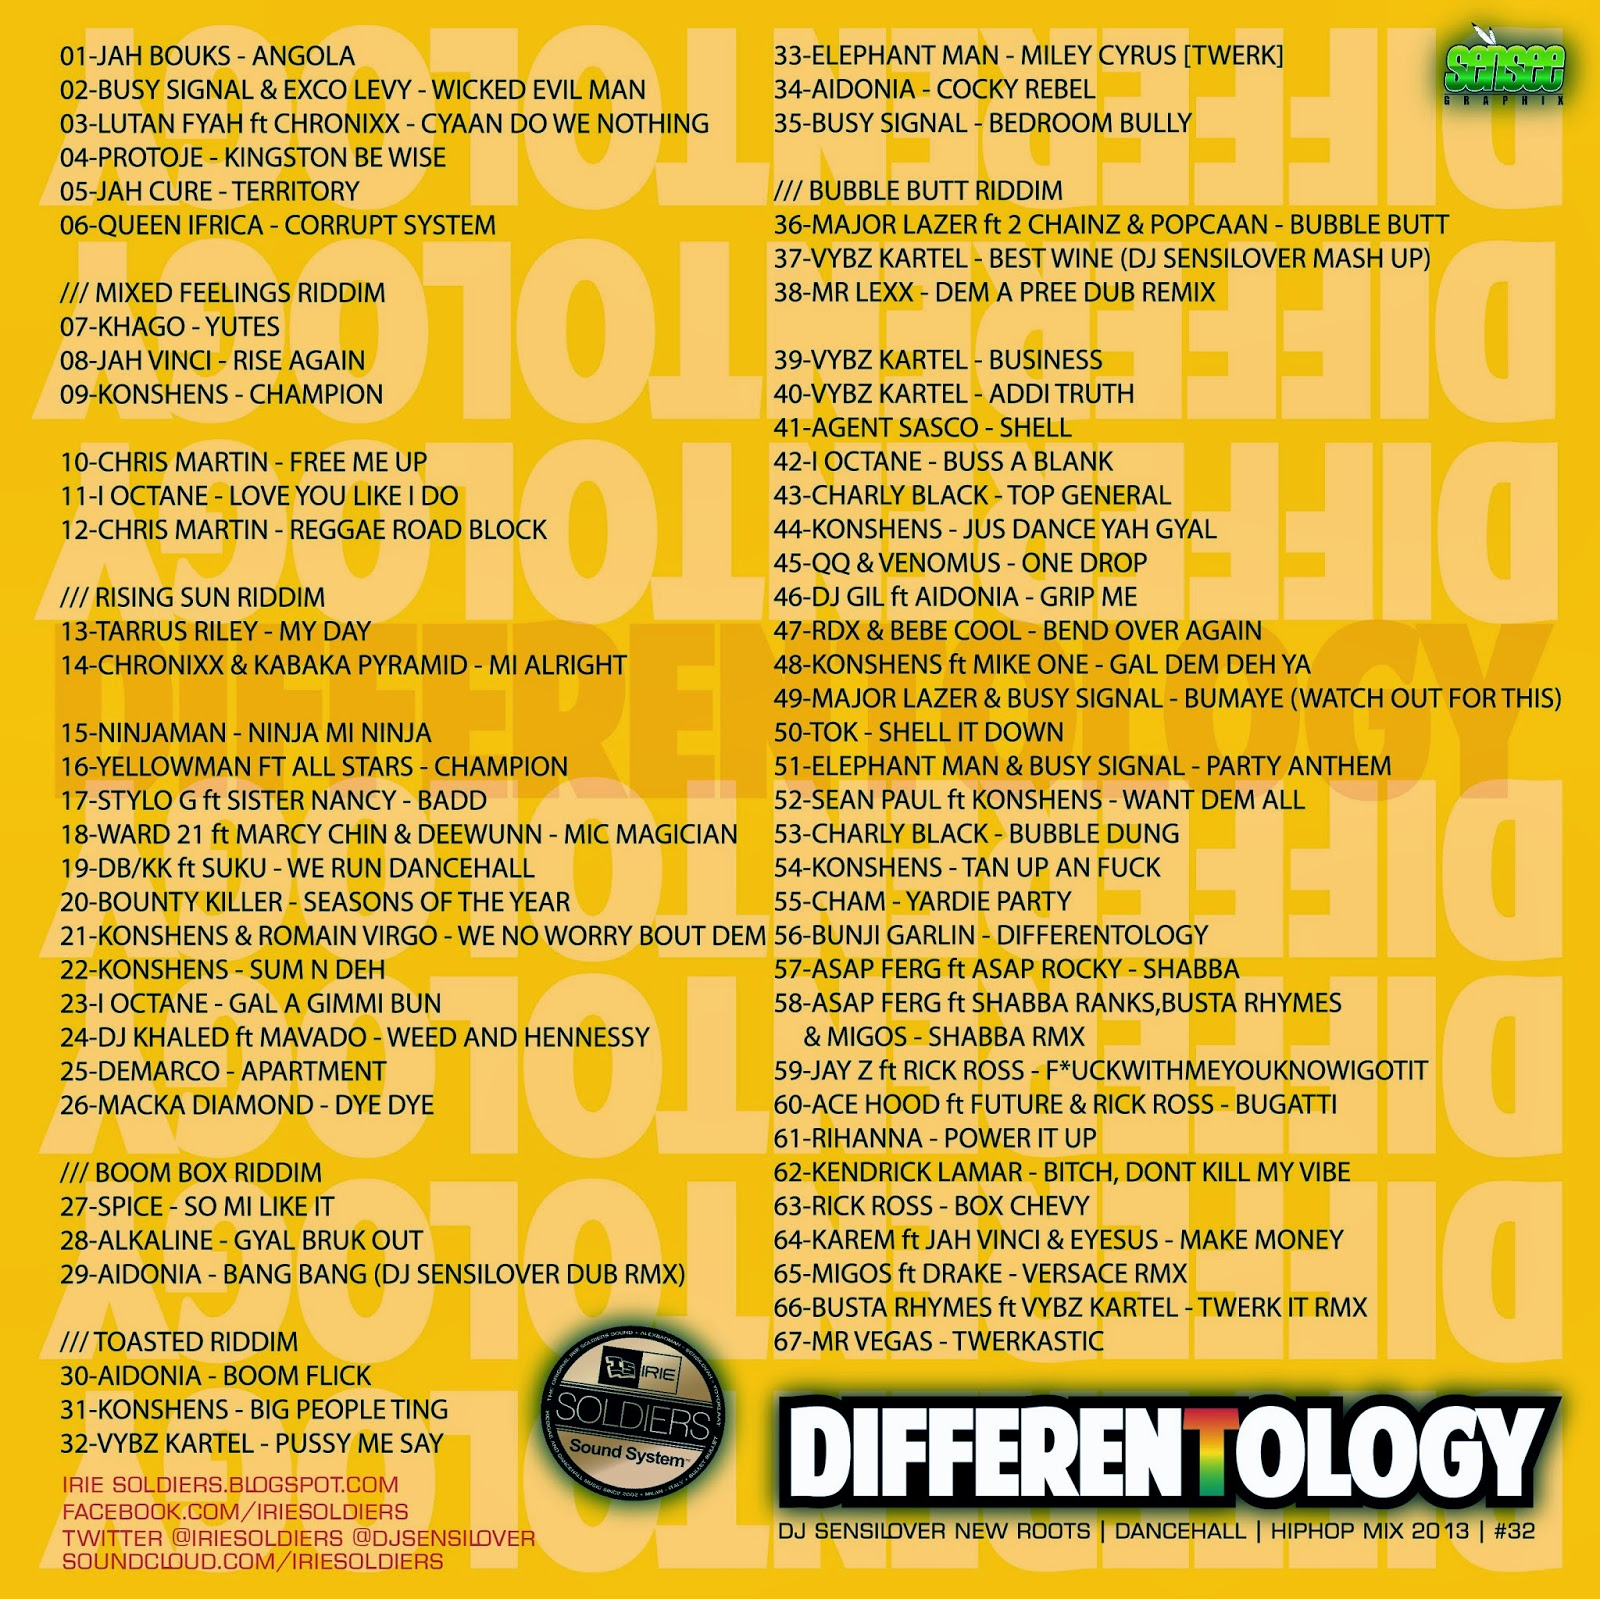 DIFFERENTOLOGY MIX #32/2013 - NEWROOTS|DANCEHALL|HIPHOP (DJ